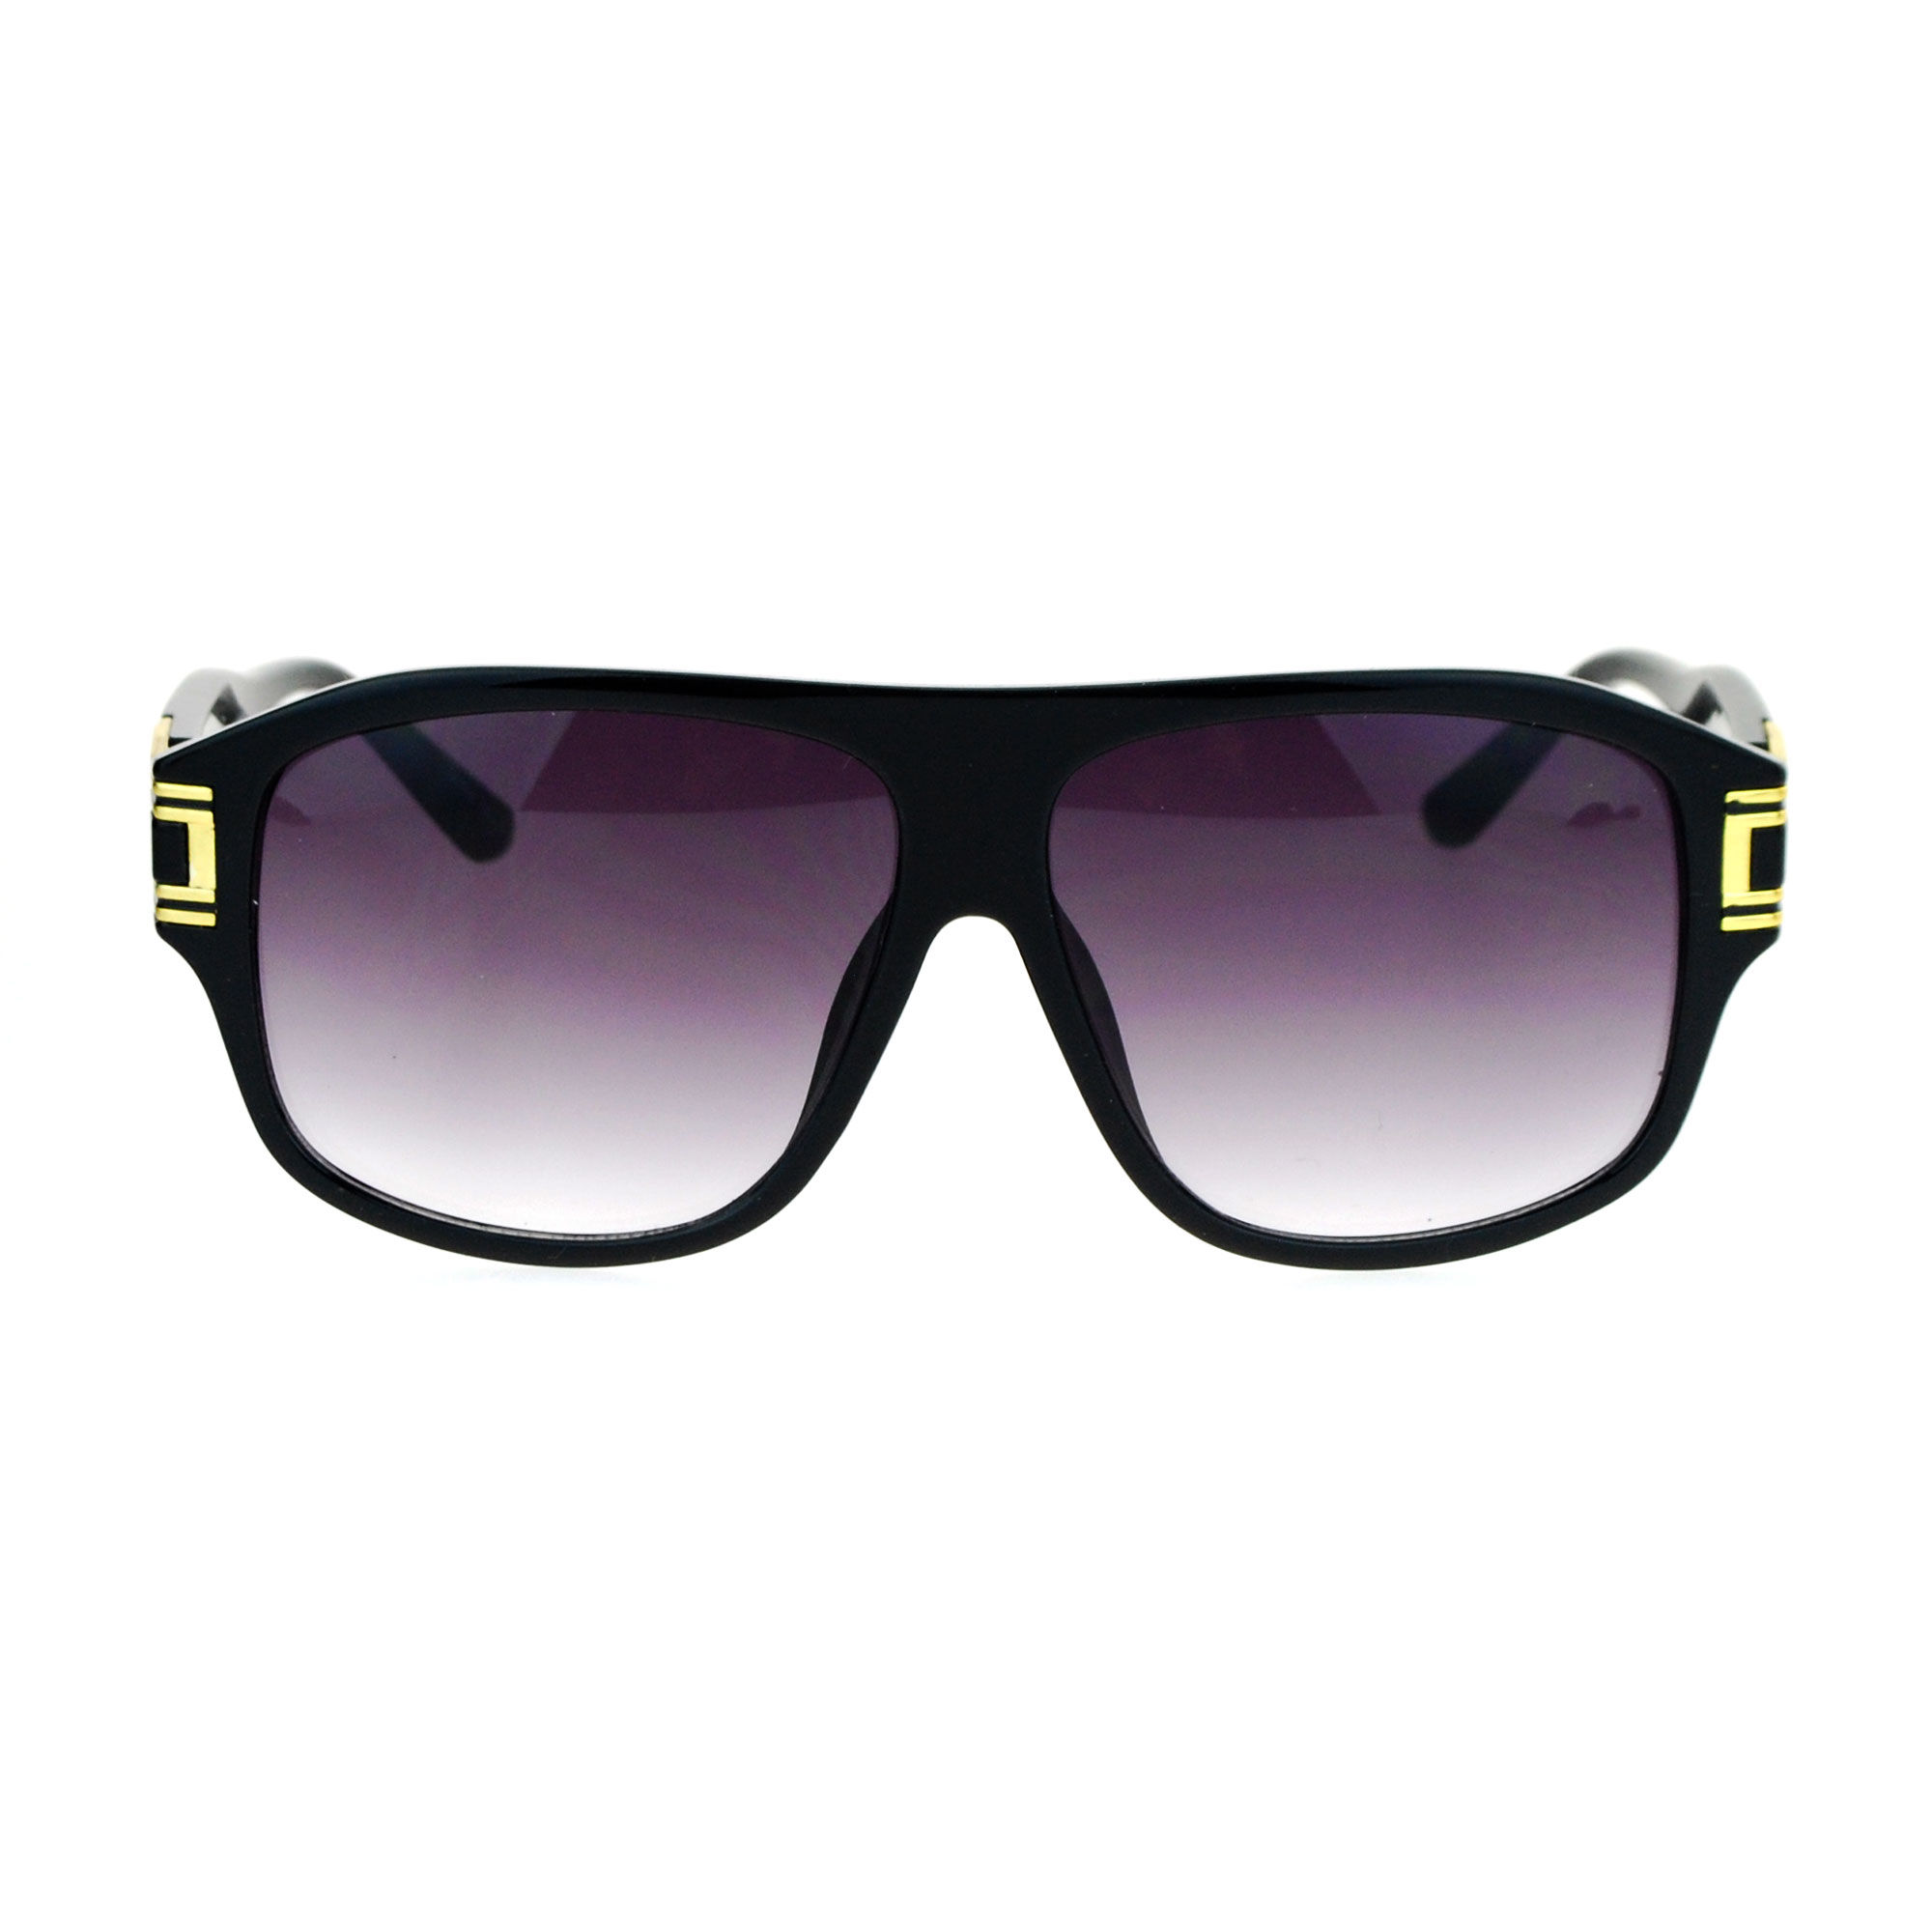 Flat Top Sunglasses  mens luxury mafia mob racer flat top sunglasses ebay